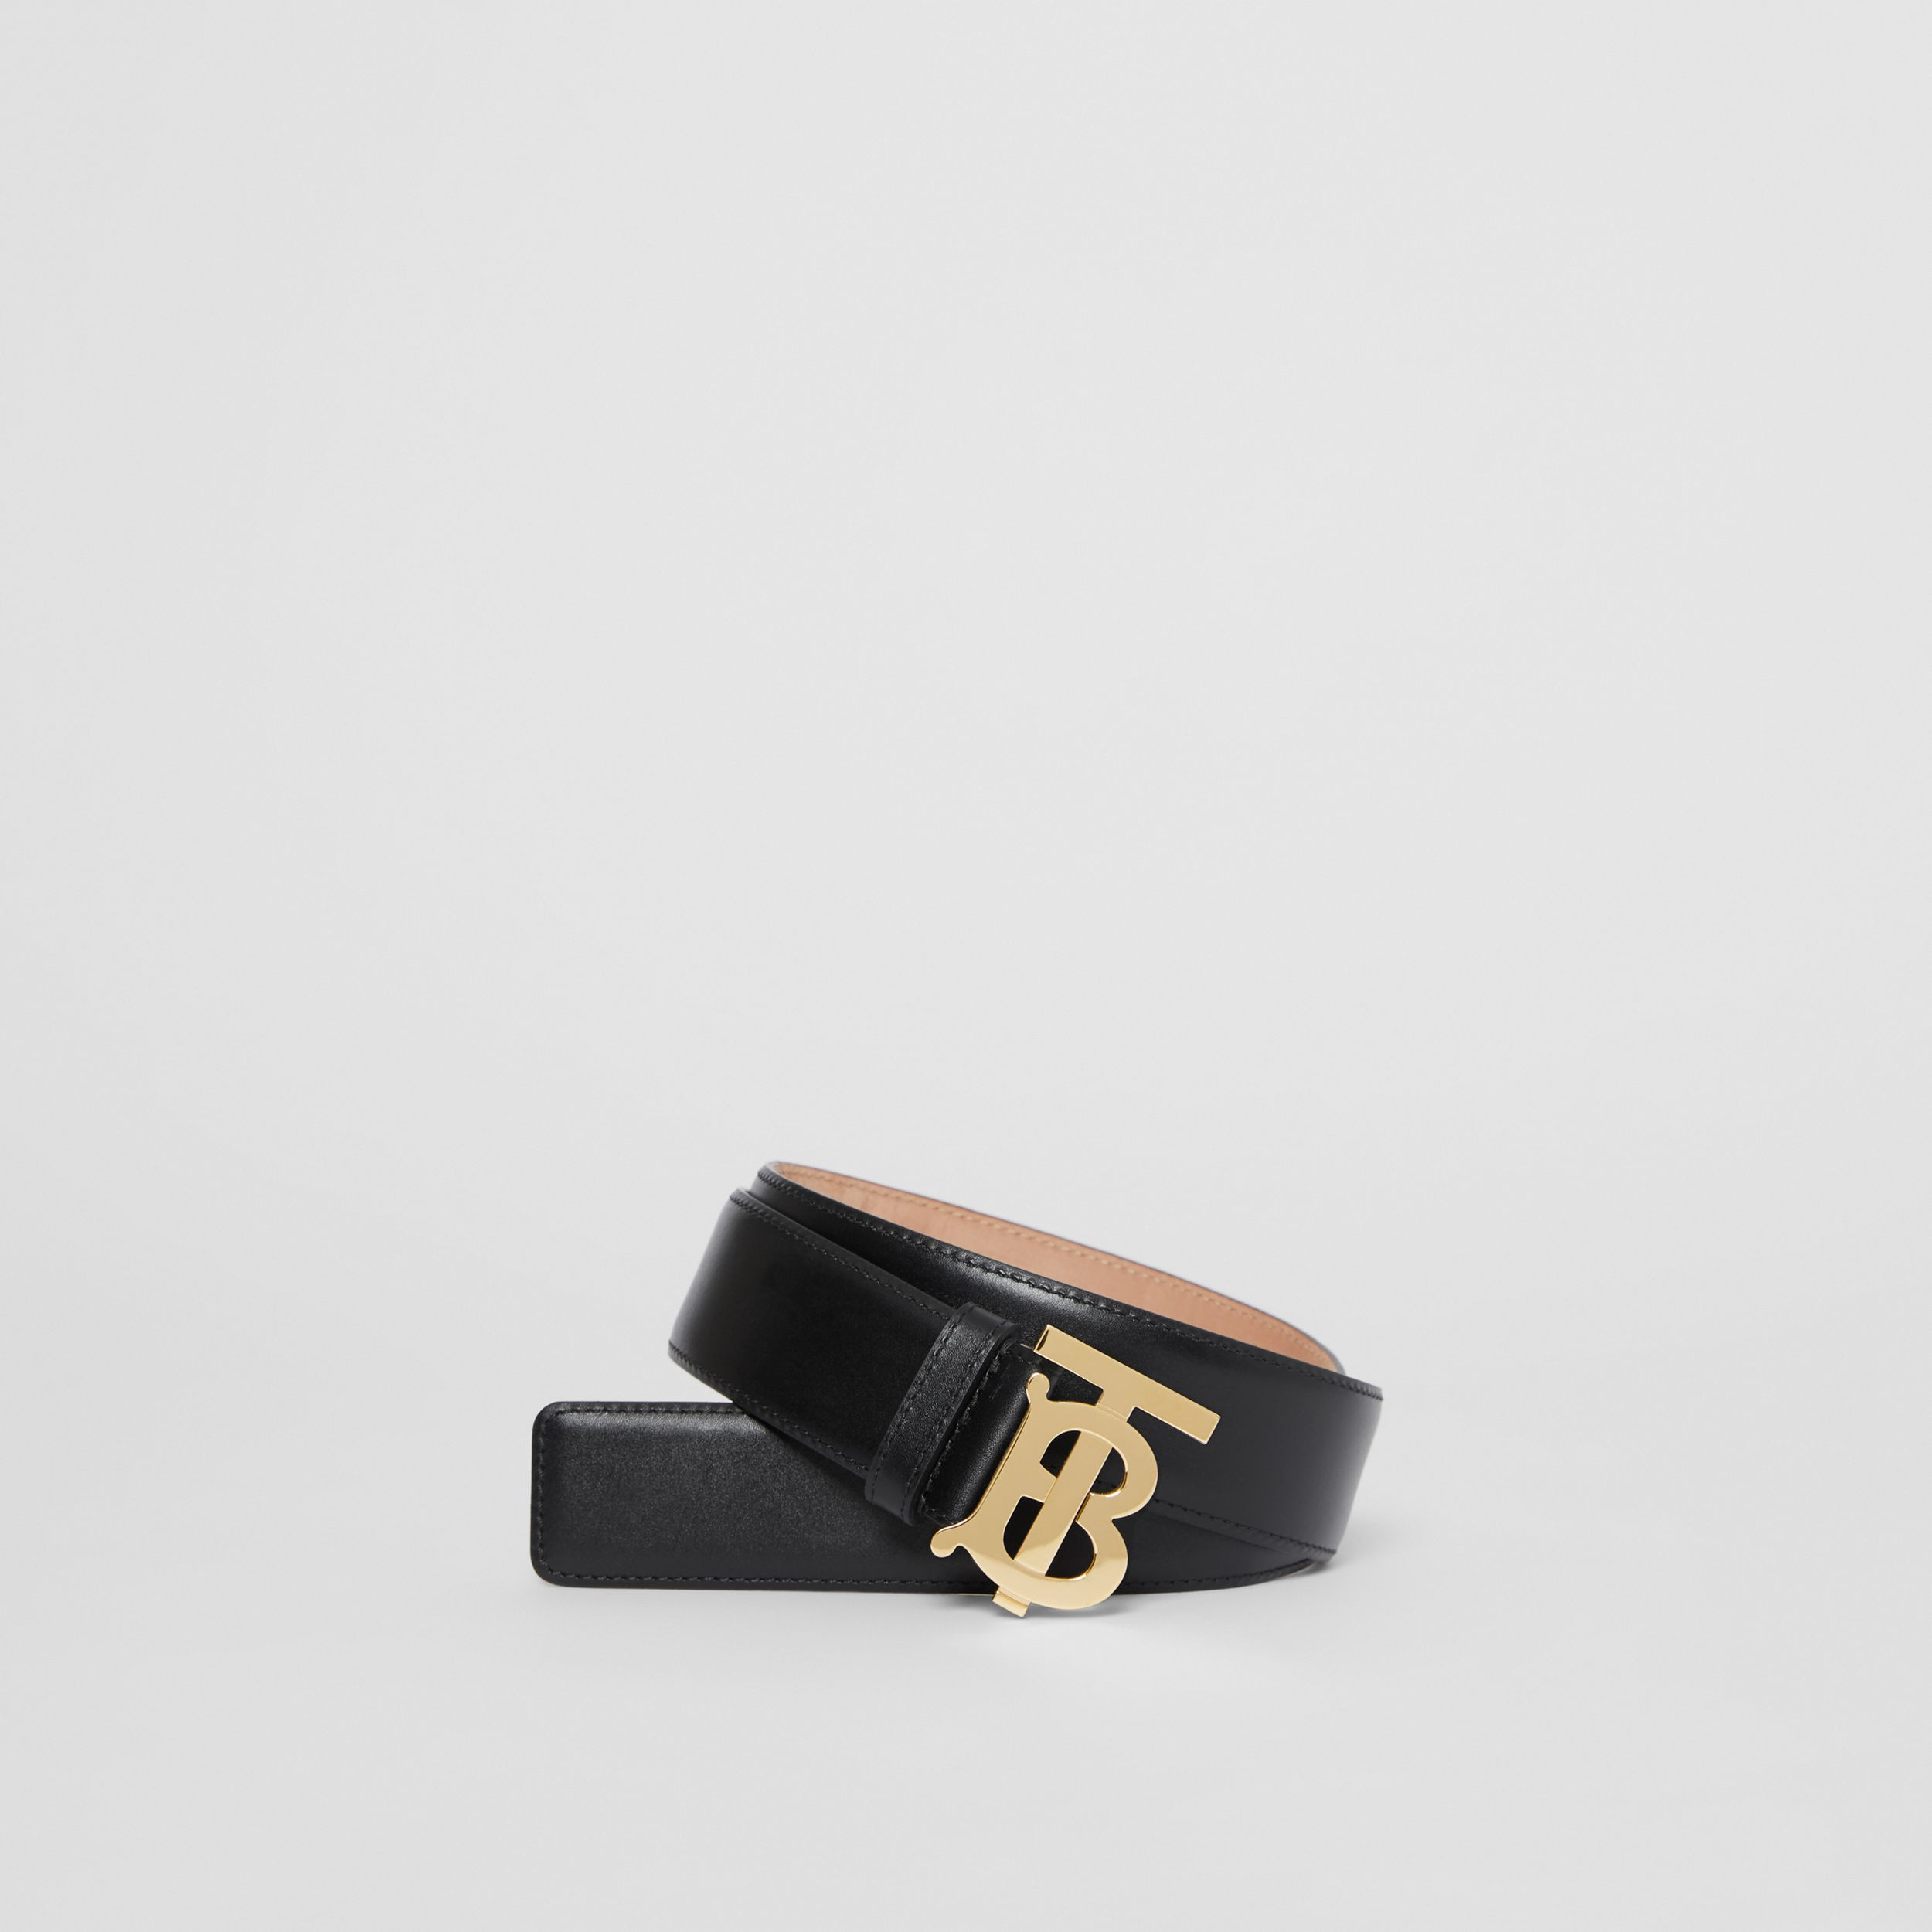 Monogram Motif Leather Belt in Black - Women | Burberry Singapore - 1